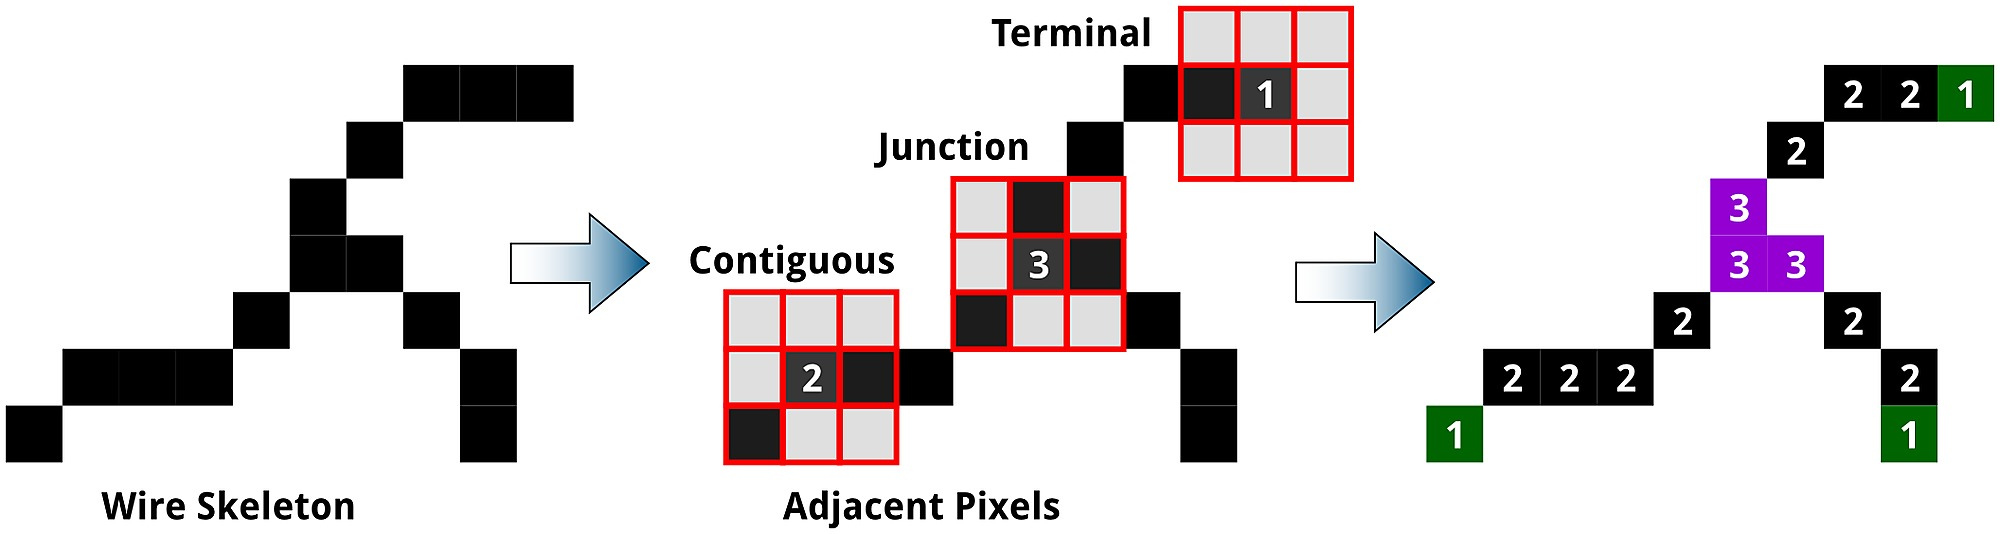 Pixels of a typical junction and three associated terminal